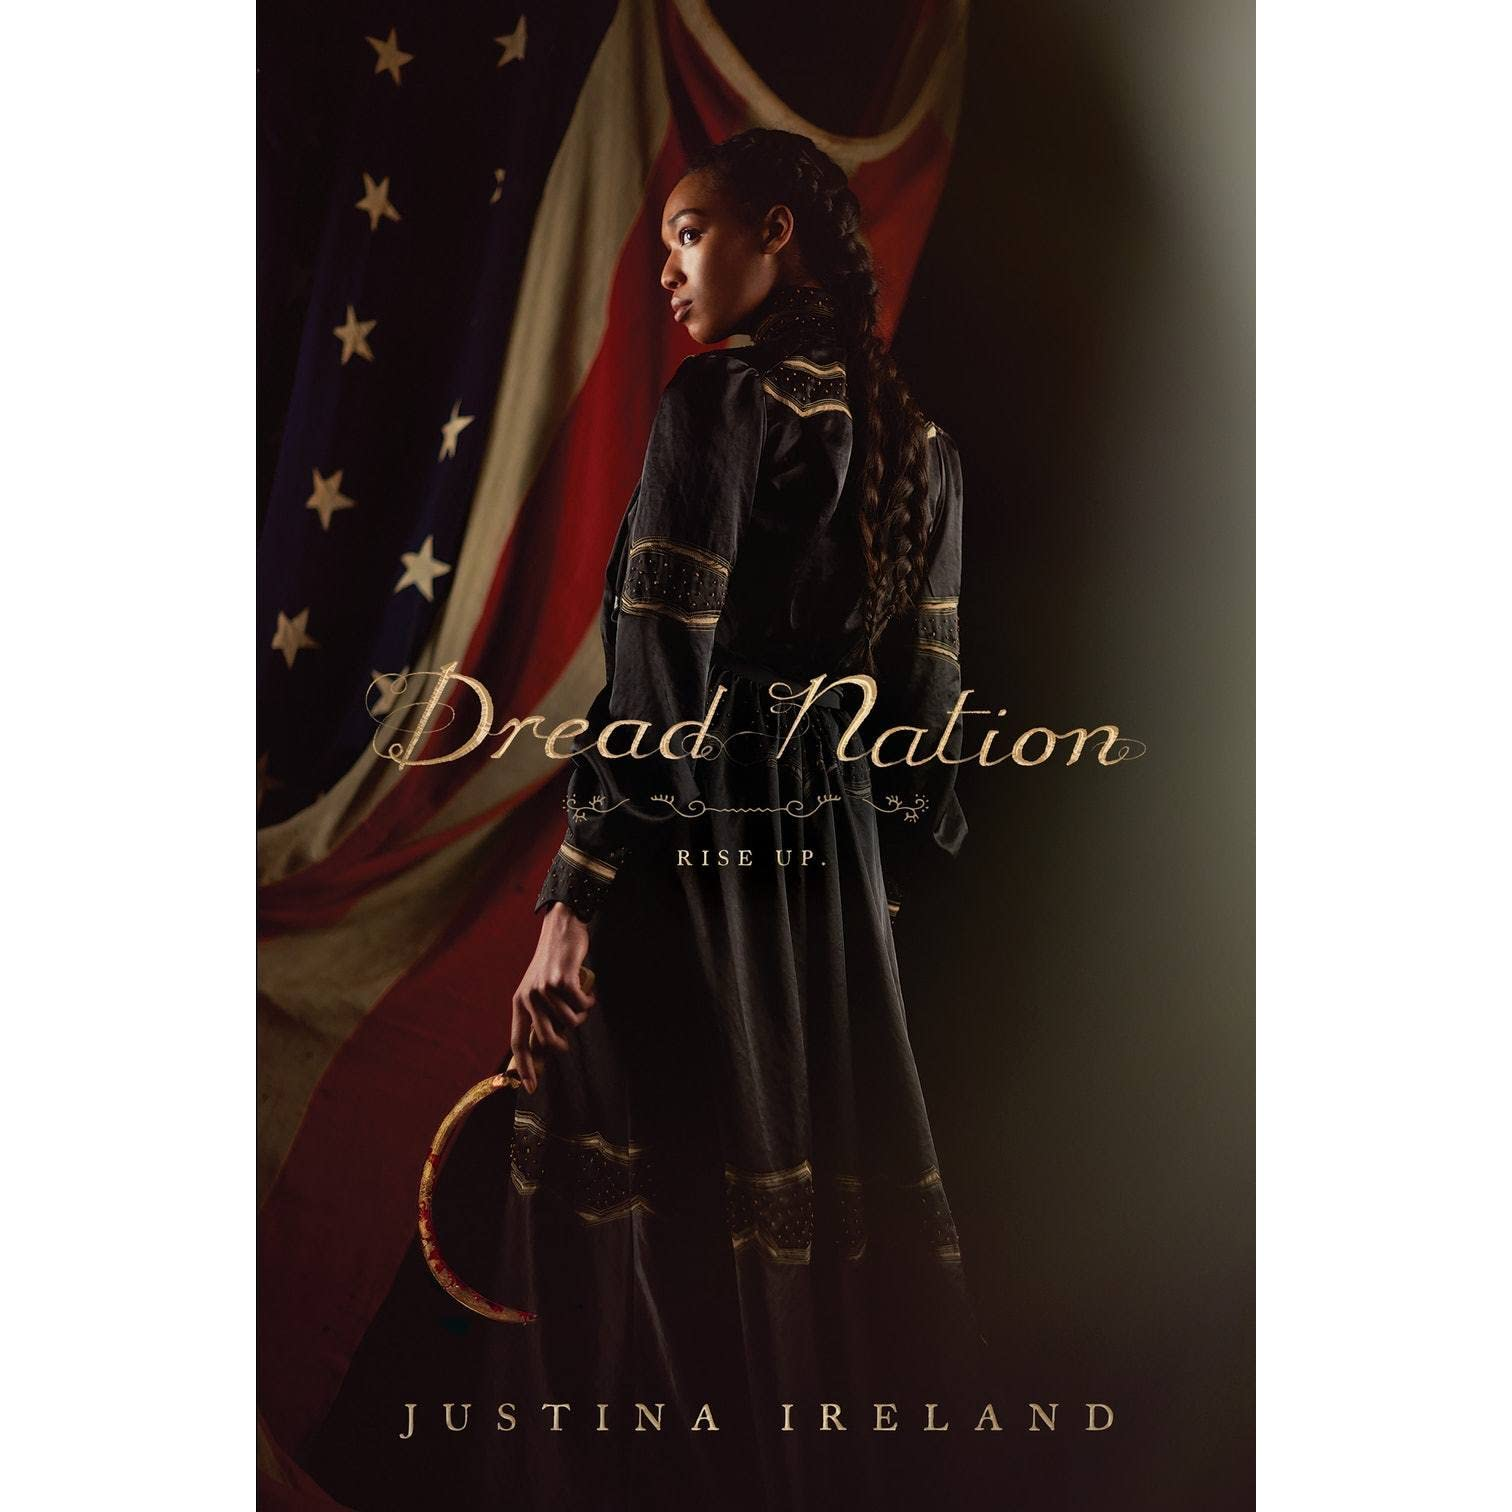 Dread Nation (Dread Nation, #1) by Justina Ireland